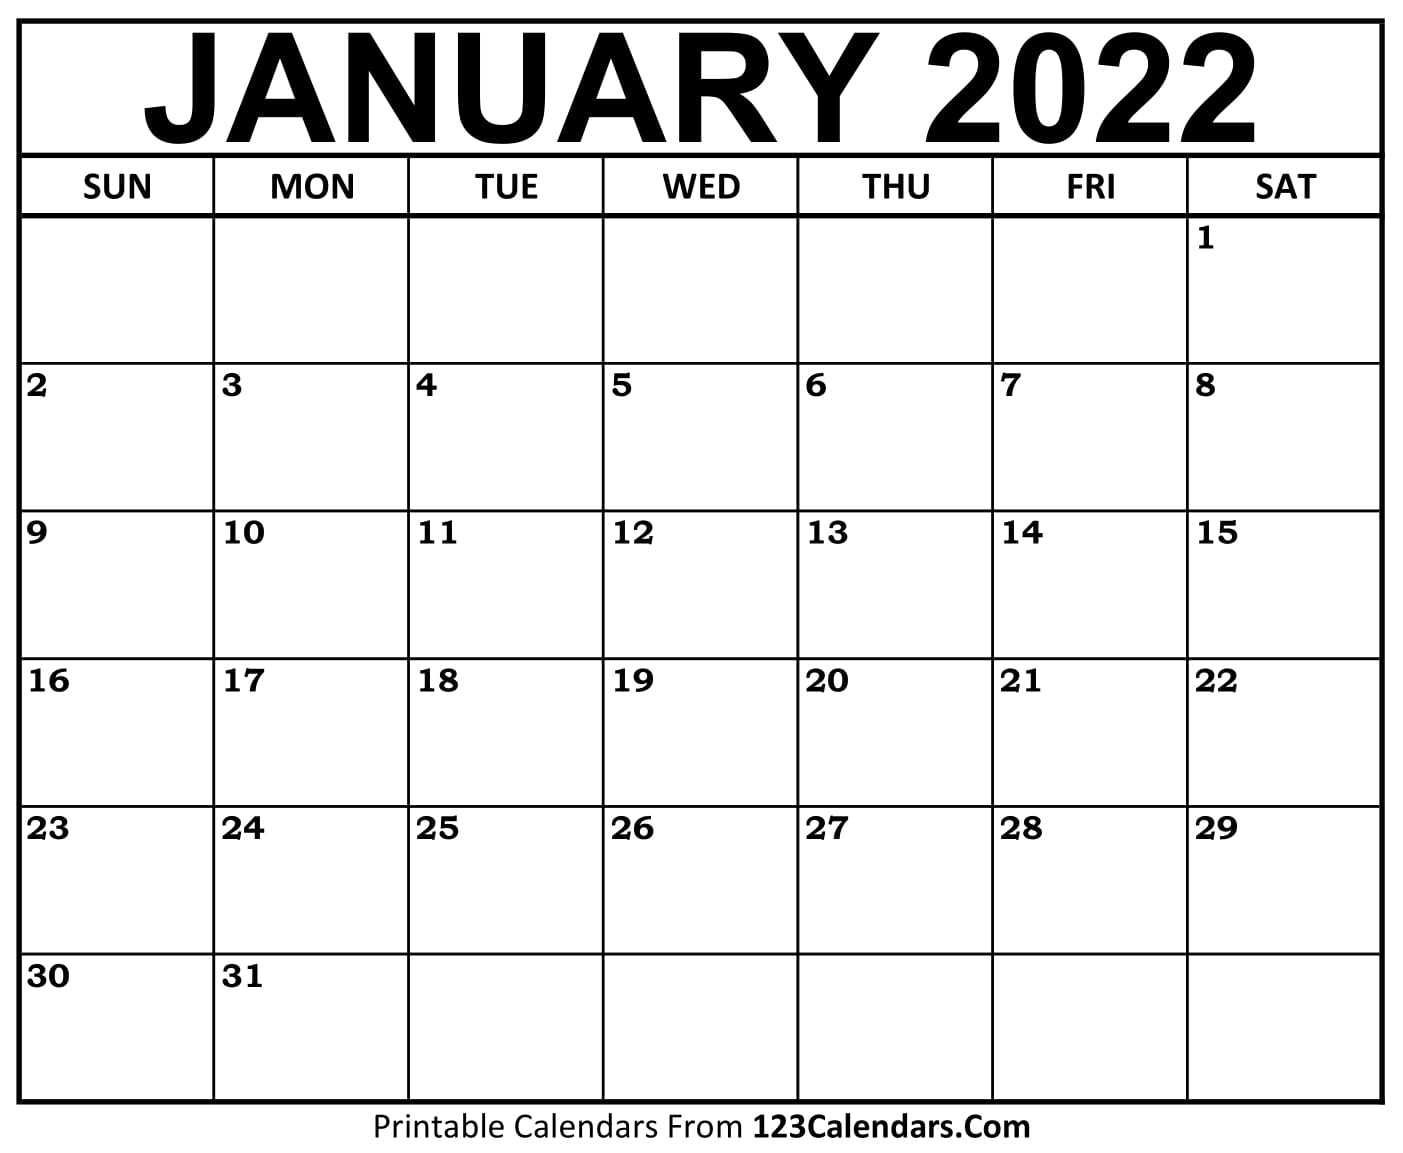 Calendar Jan 2021 Printable January 2021 Calendar Templates | 123Calendars.com